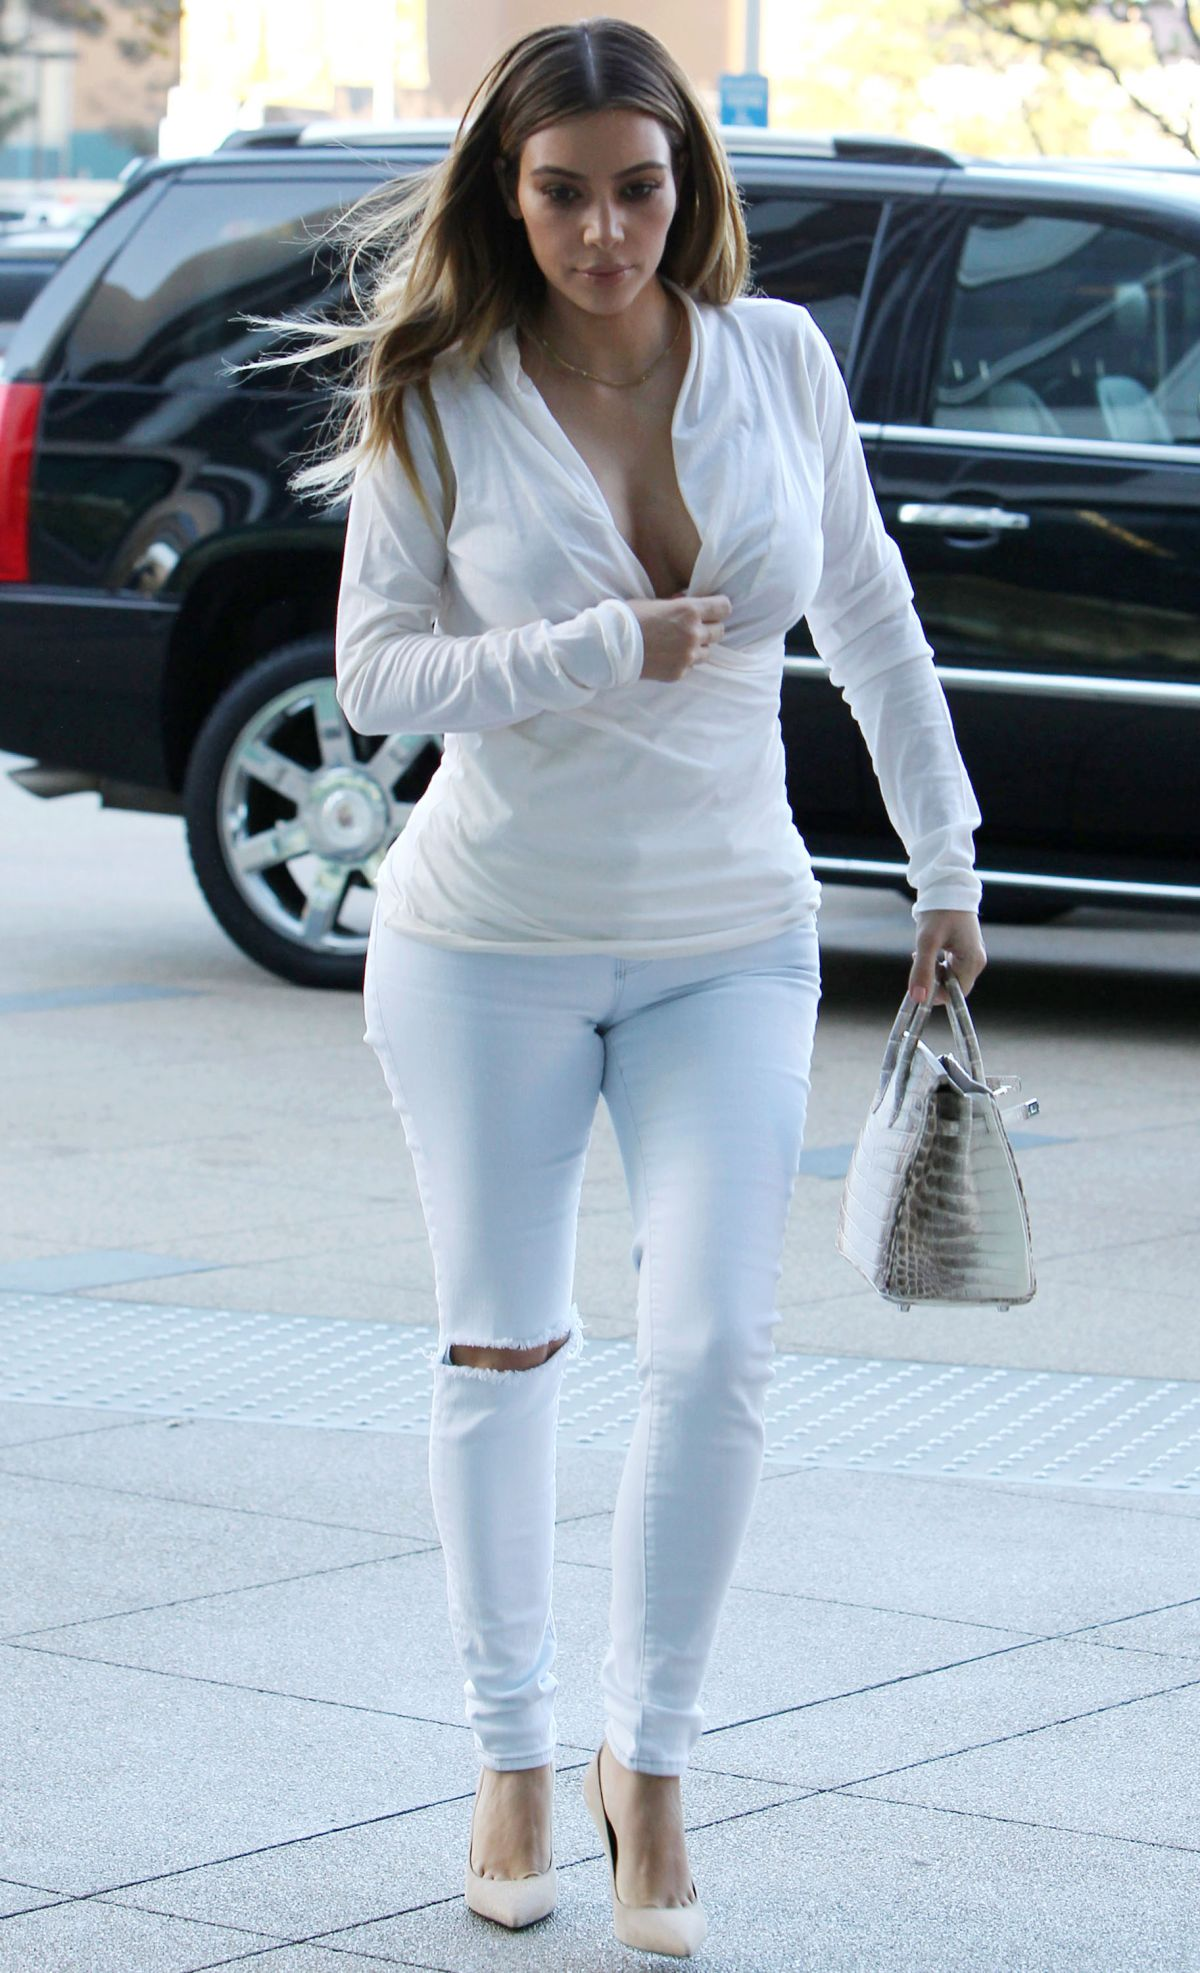 Kim Kardashian Out And About In Plaza Towers In Los Angeles Hawtcelebs